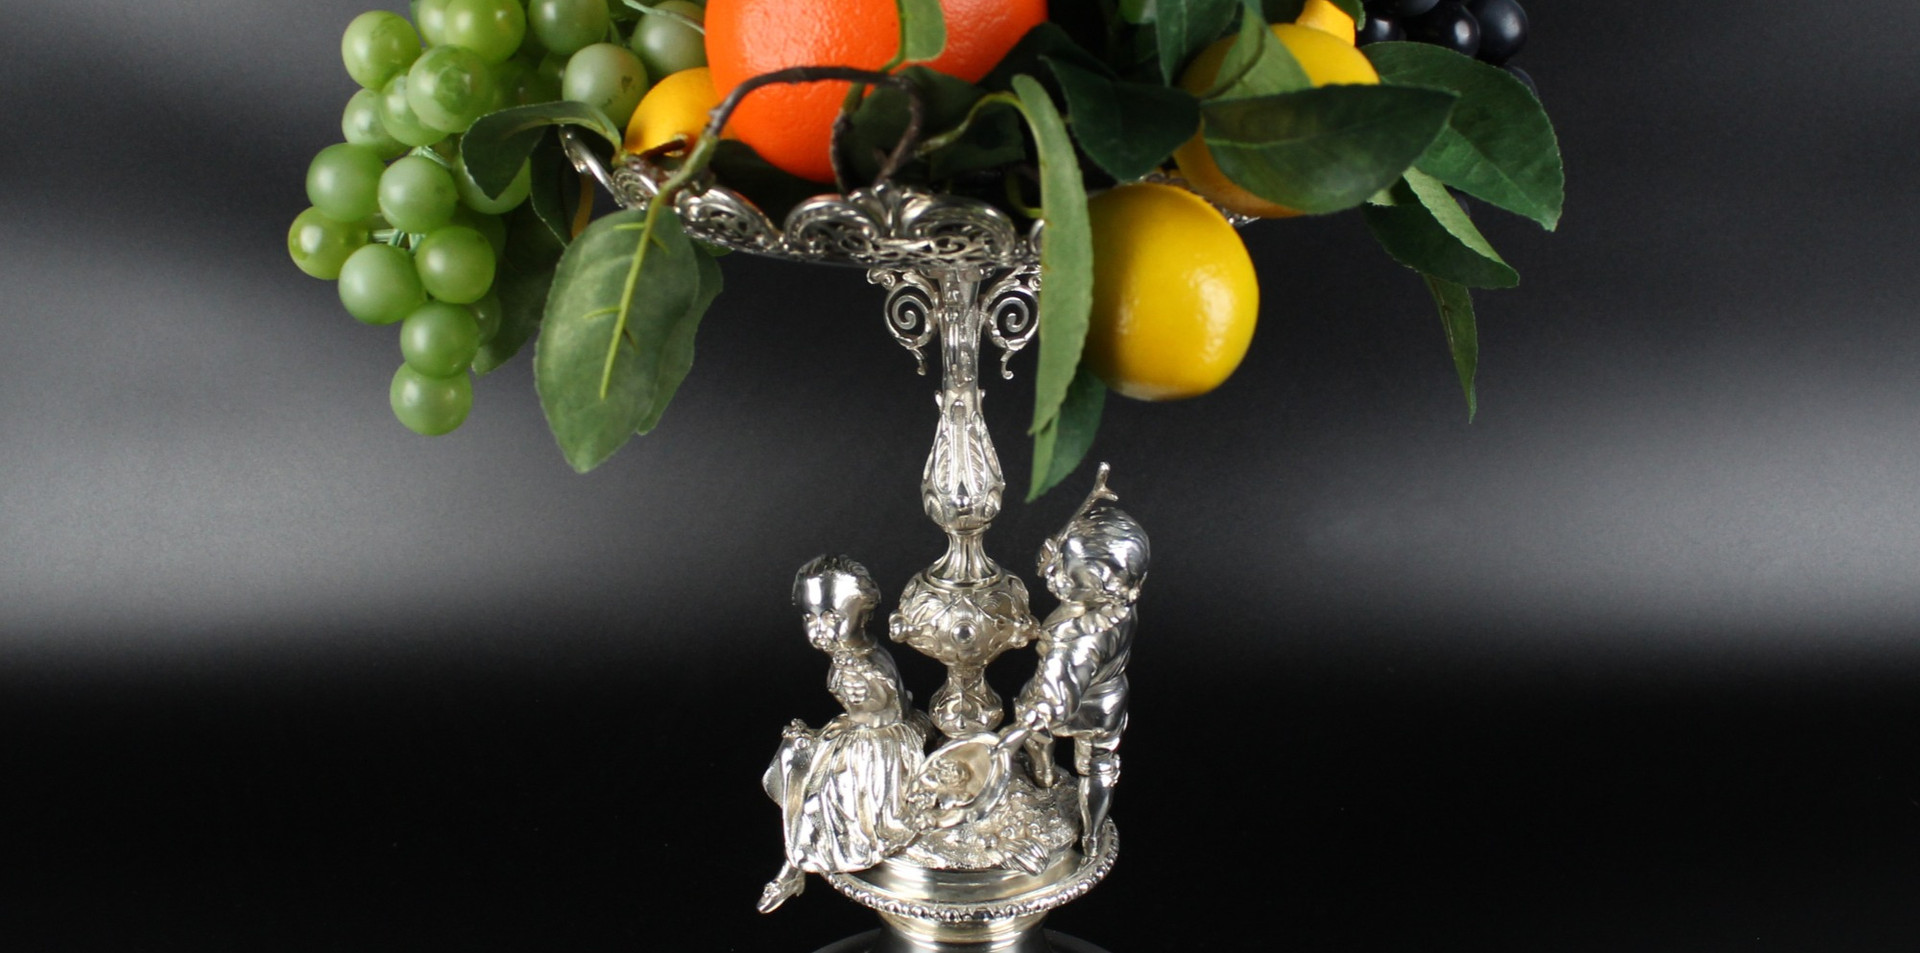 """Silver centrepiece 13"""" high Robert Garrard II, 1872. 60 oz. Engraved around base R & S GARRARD LONDON"""" The crest and motto For the Rev. John Yonge of Puslinch & Combe, Devon. Motto QUALIS VITA FINIS ITA - As Life so its end  The centrepiece with a scene of children - The girl making a  garland of roses, her playmate offering his cap full of roses to her.  £4,500.00"""